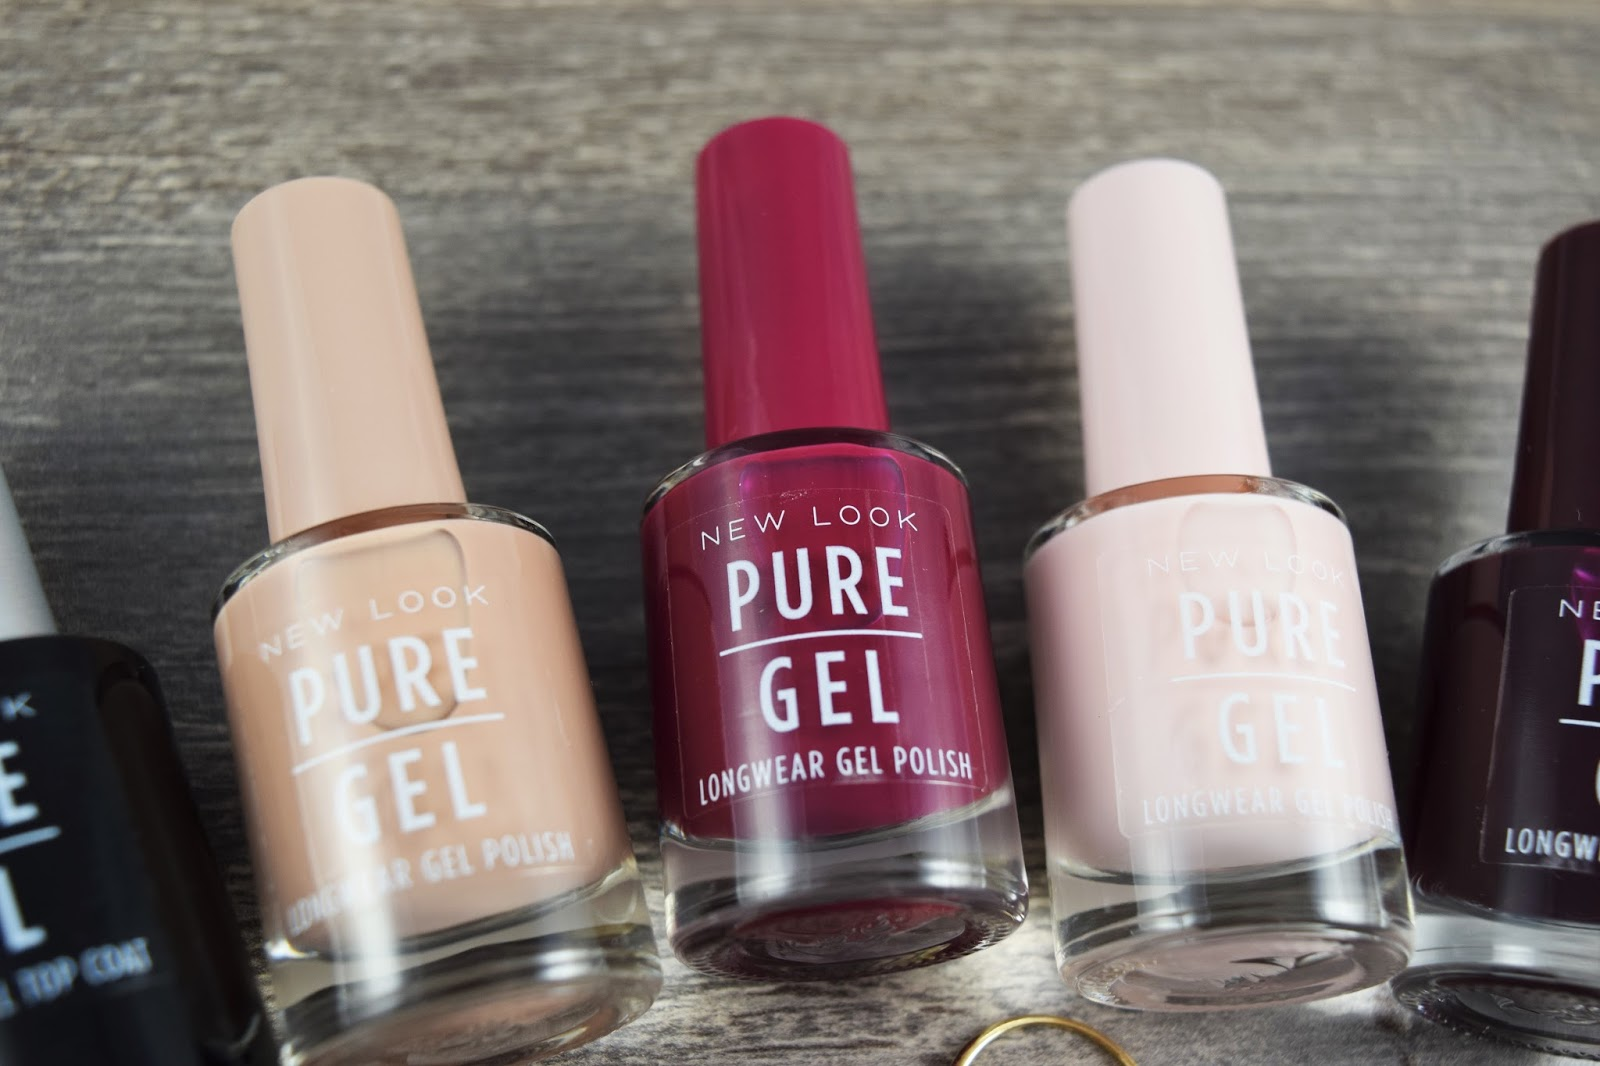 NEW LOOK PURE COLOUR PURE GEL NAIL POLISHES - A Life With Frills